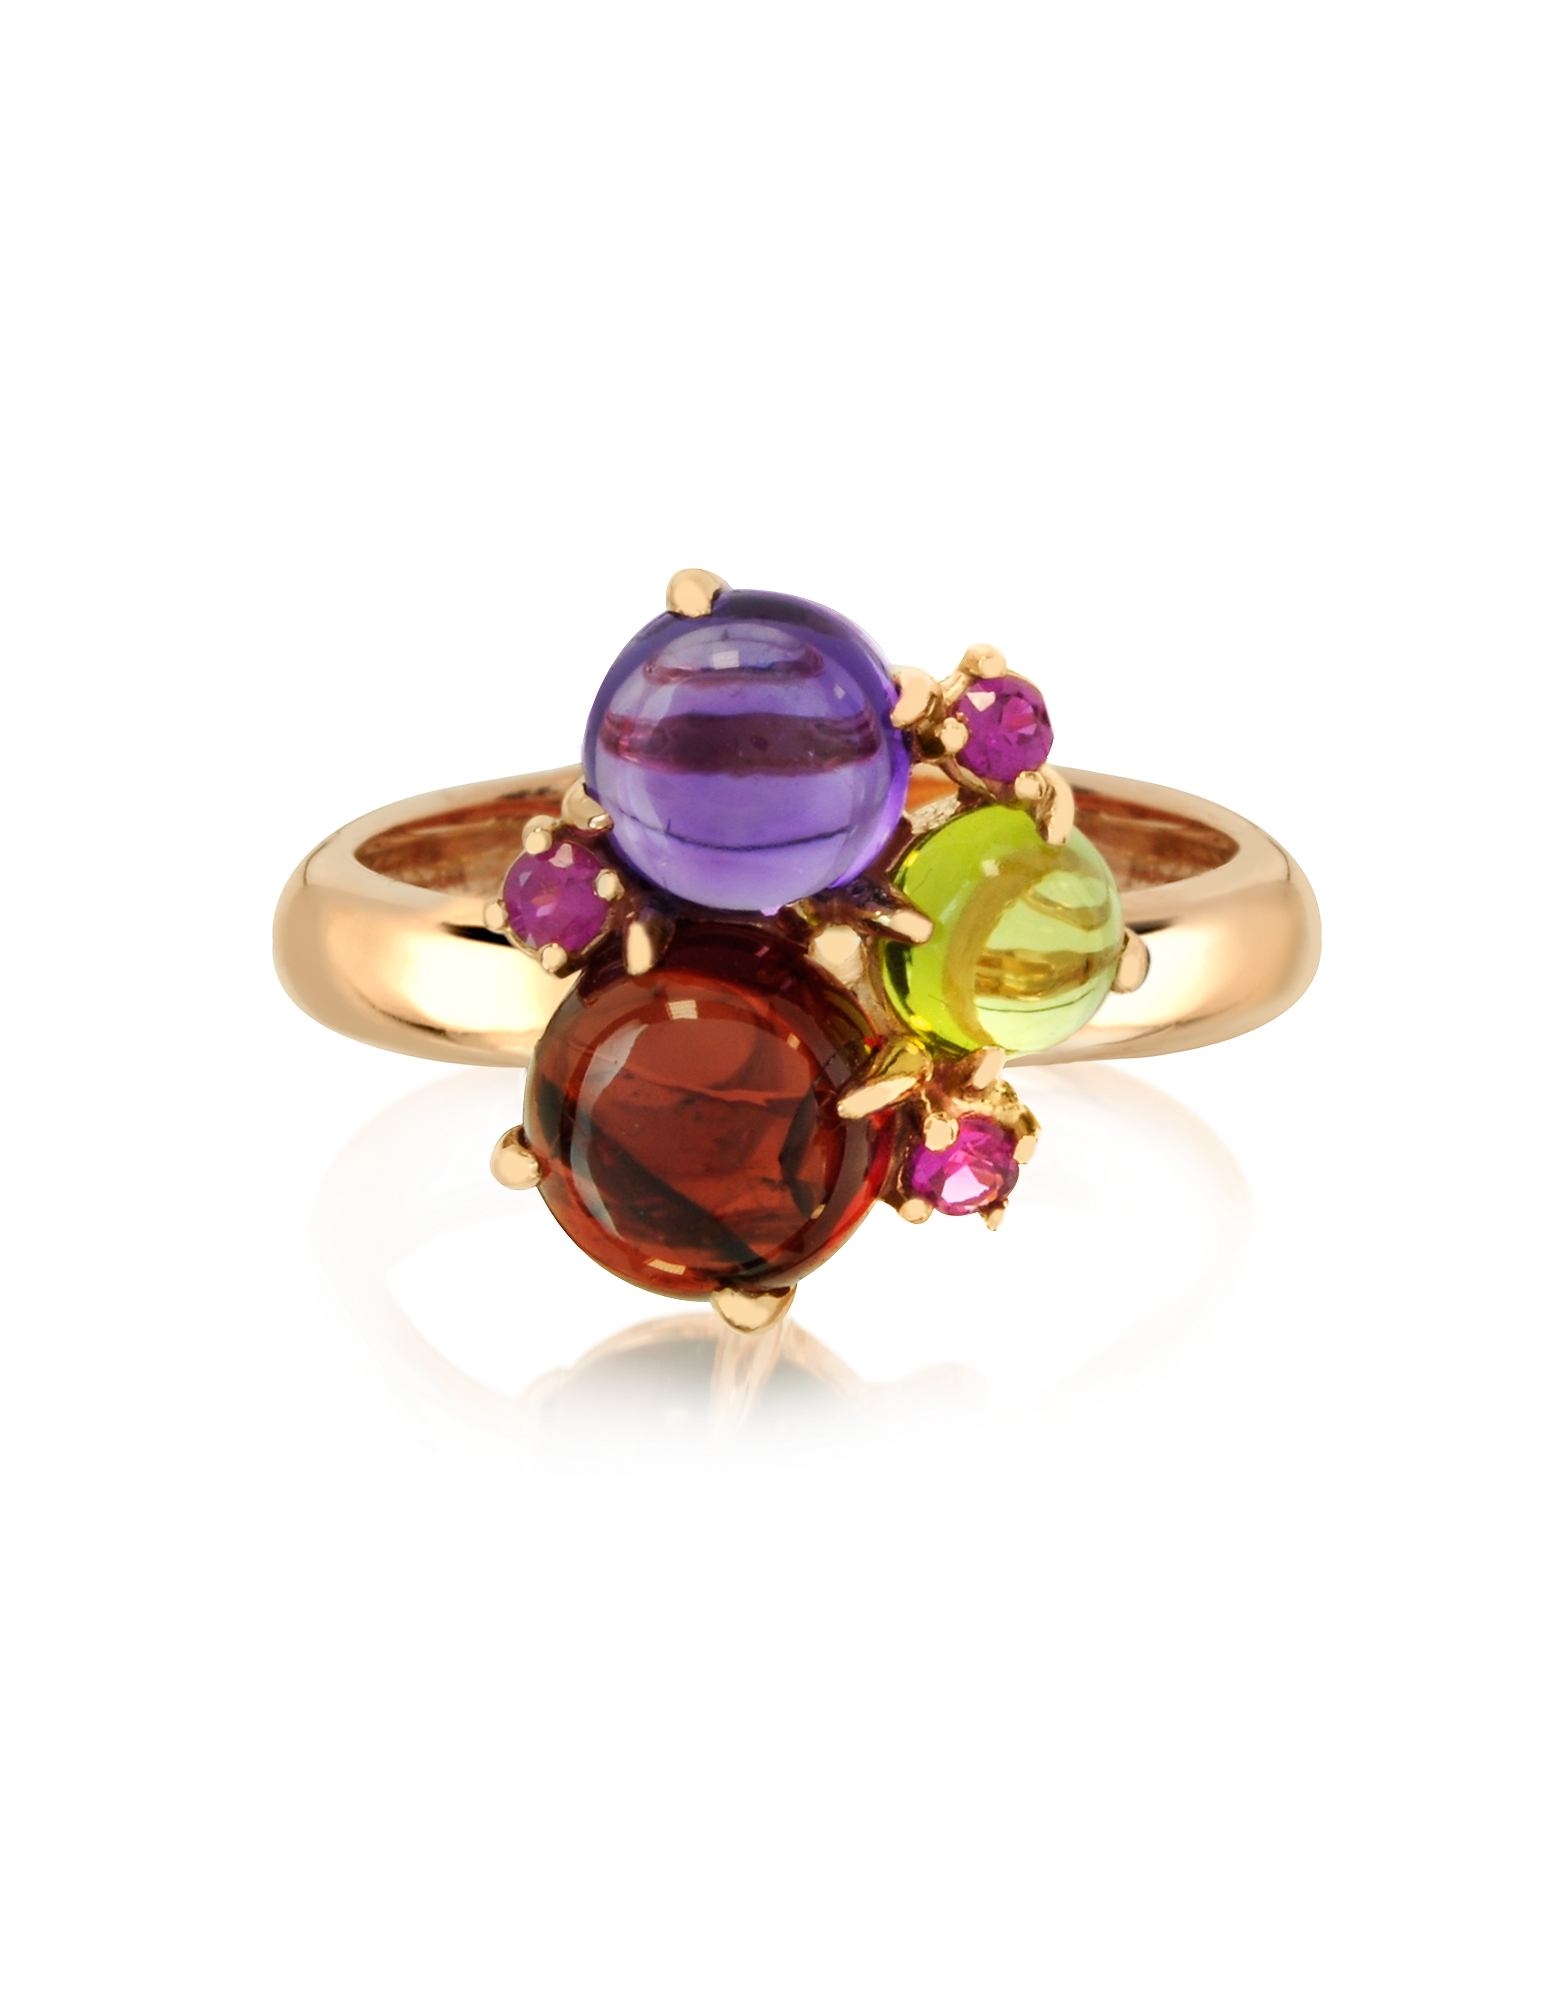 Mia & Beverly Designer Rings, Gemstones 18K Rose Gold Ring